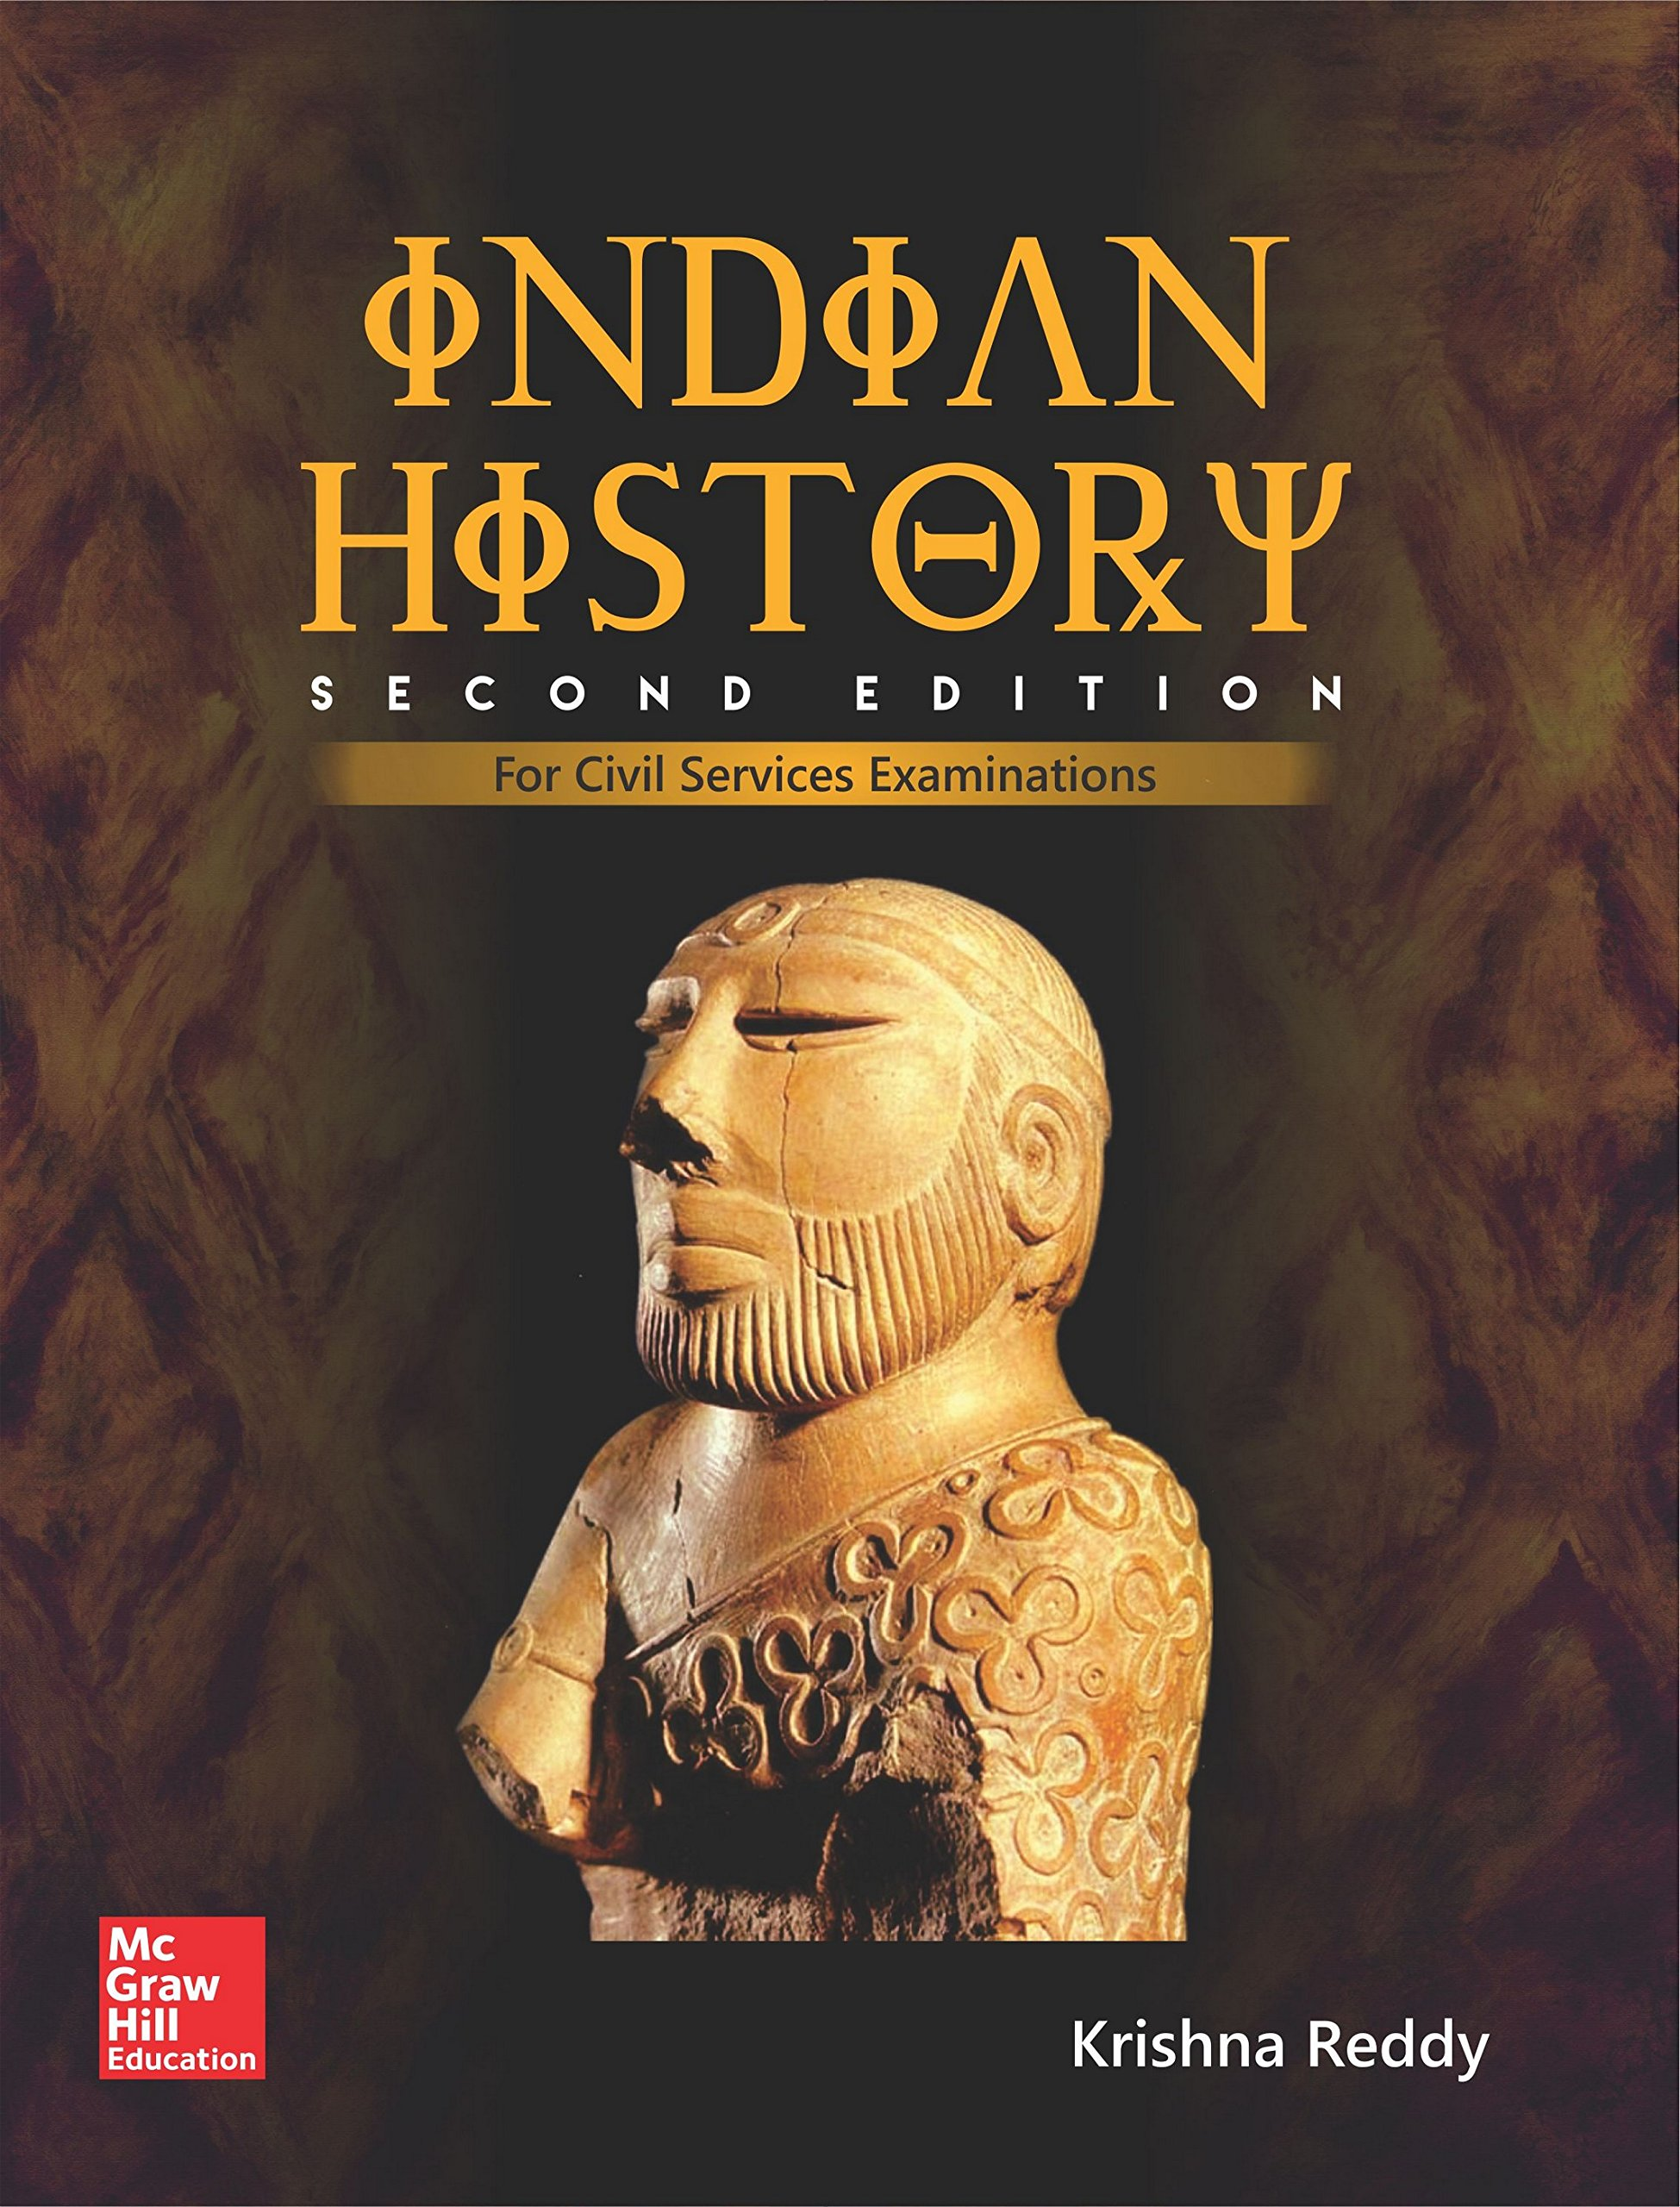 Indian History by Krishna Reddy pdf Download